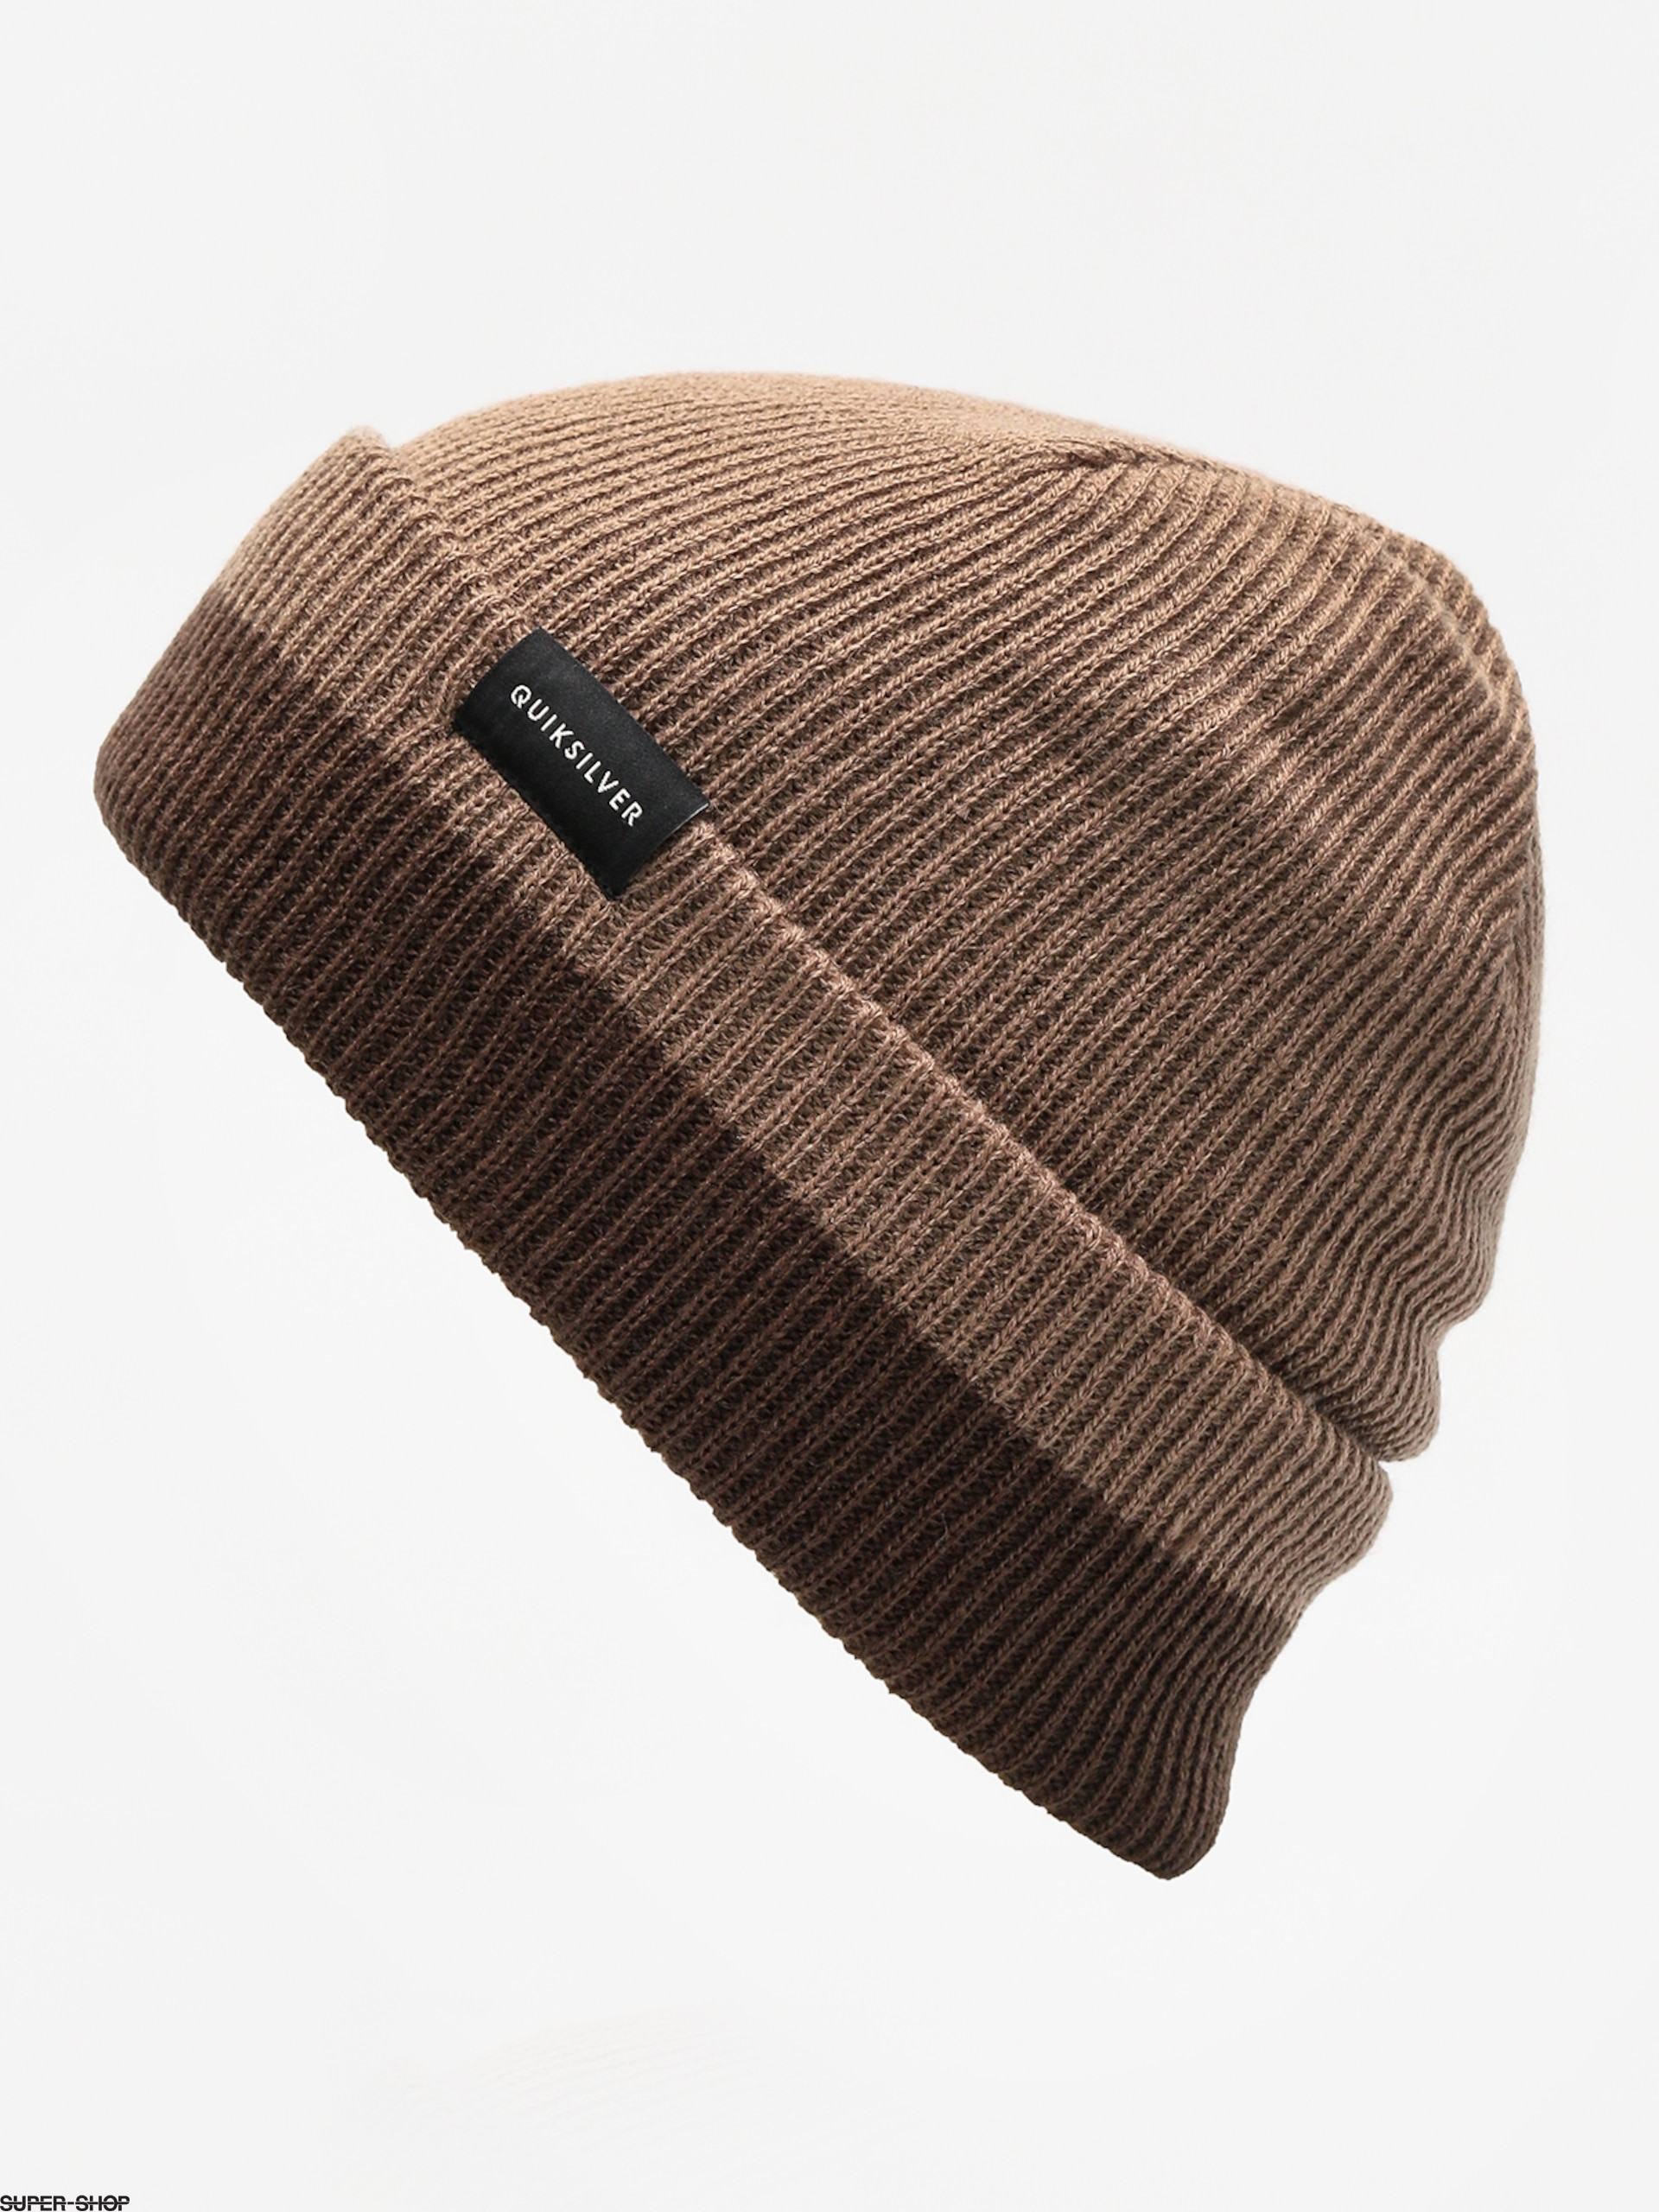 7183e961008 966265-w1920-quiksilver-beanie-performed-color-block-2-beanie -chocolate-brown.jpg